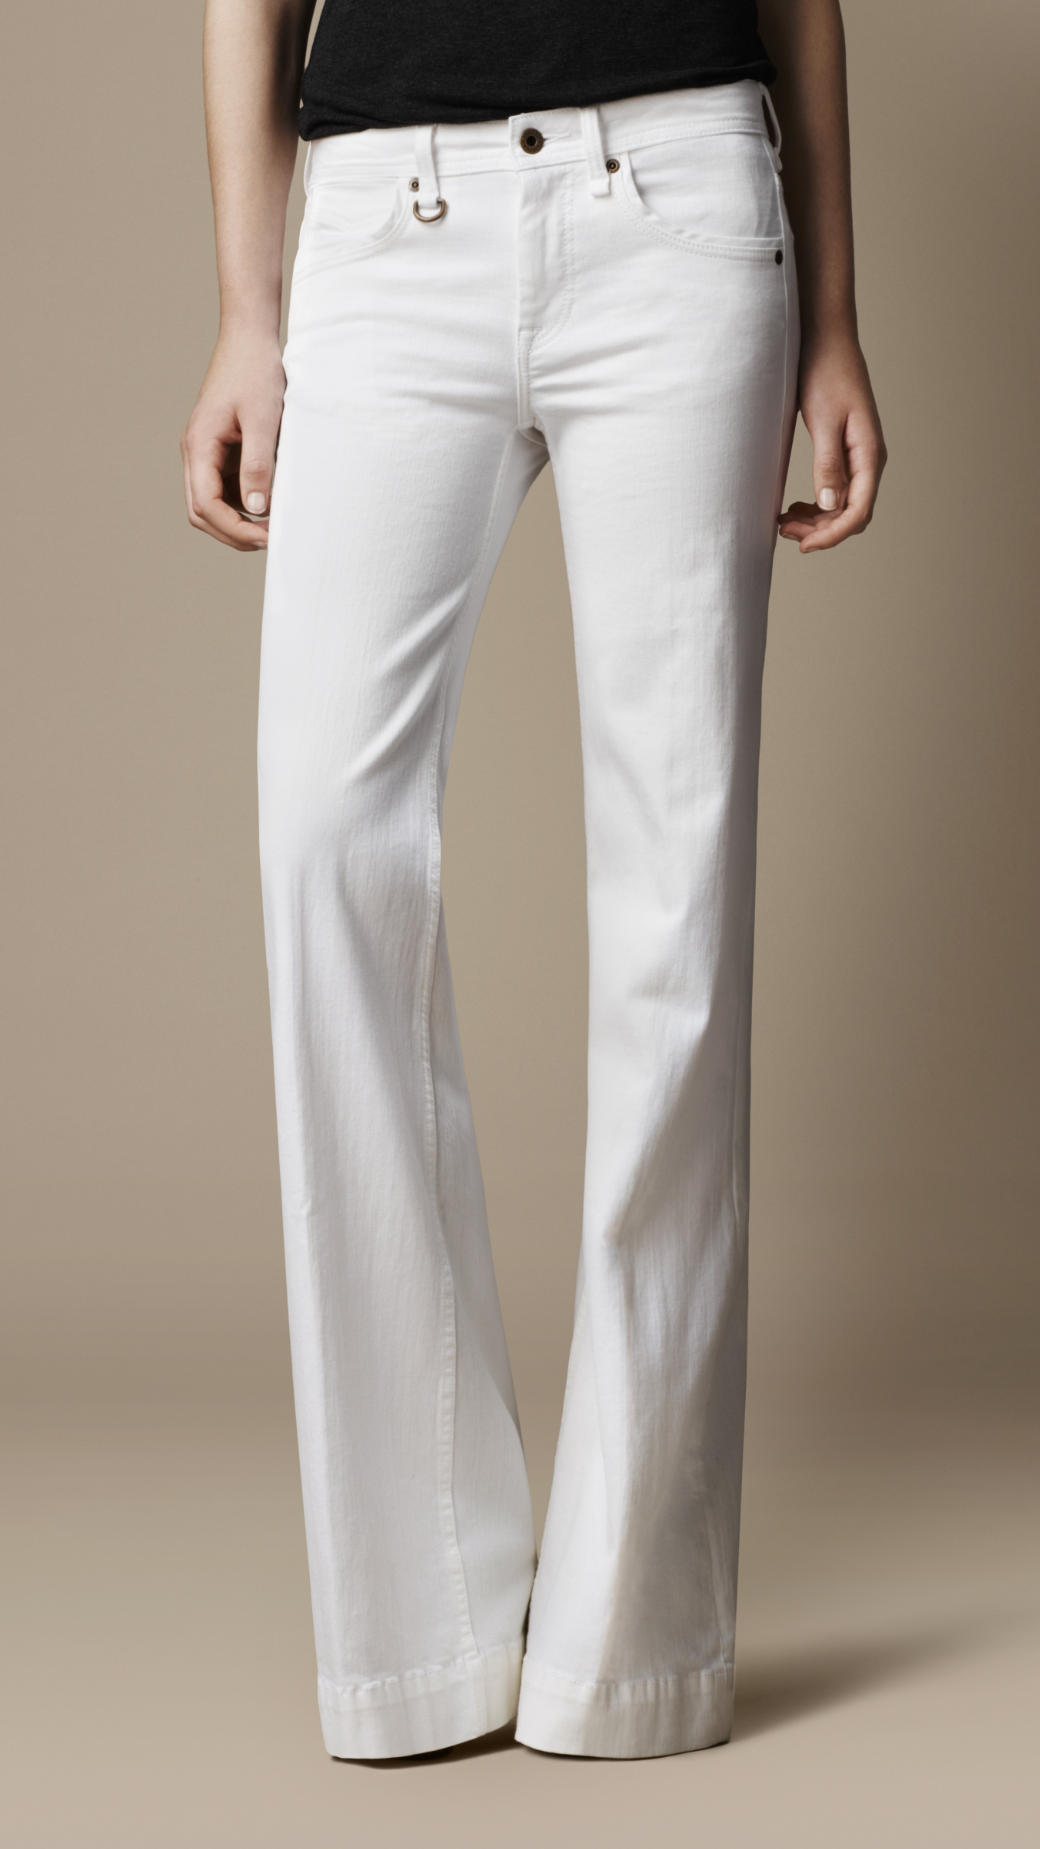 Burberry Flare Fit Jeans in White